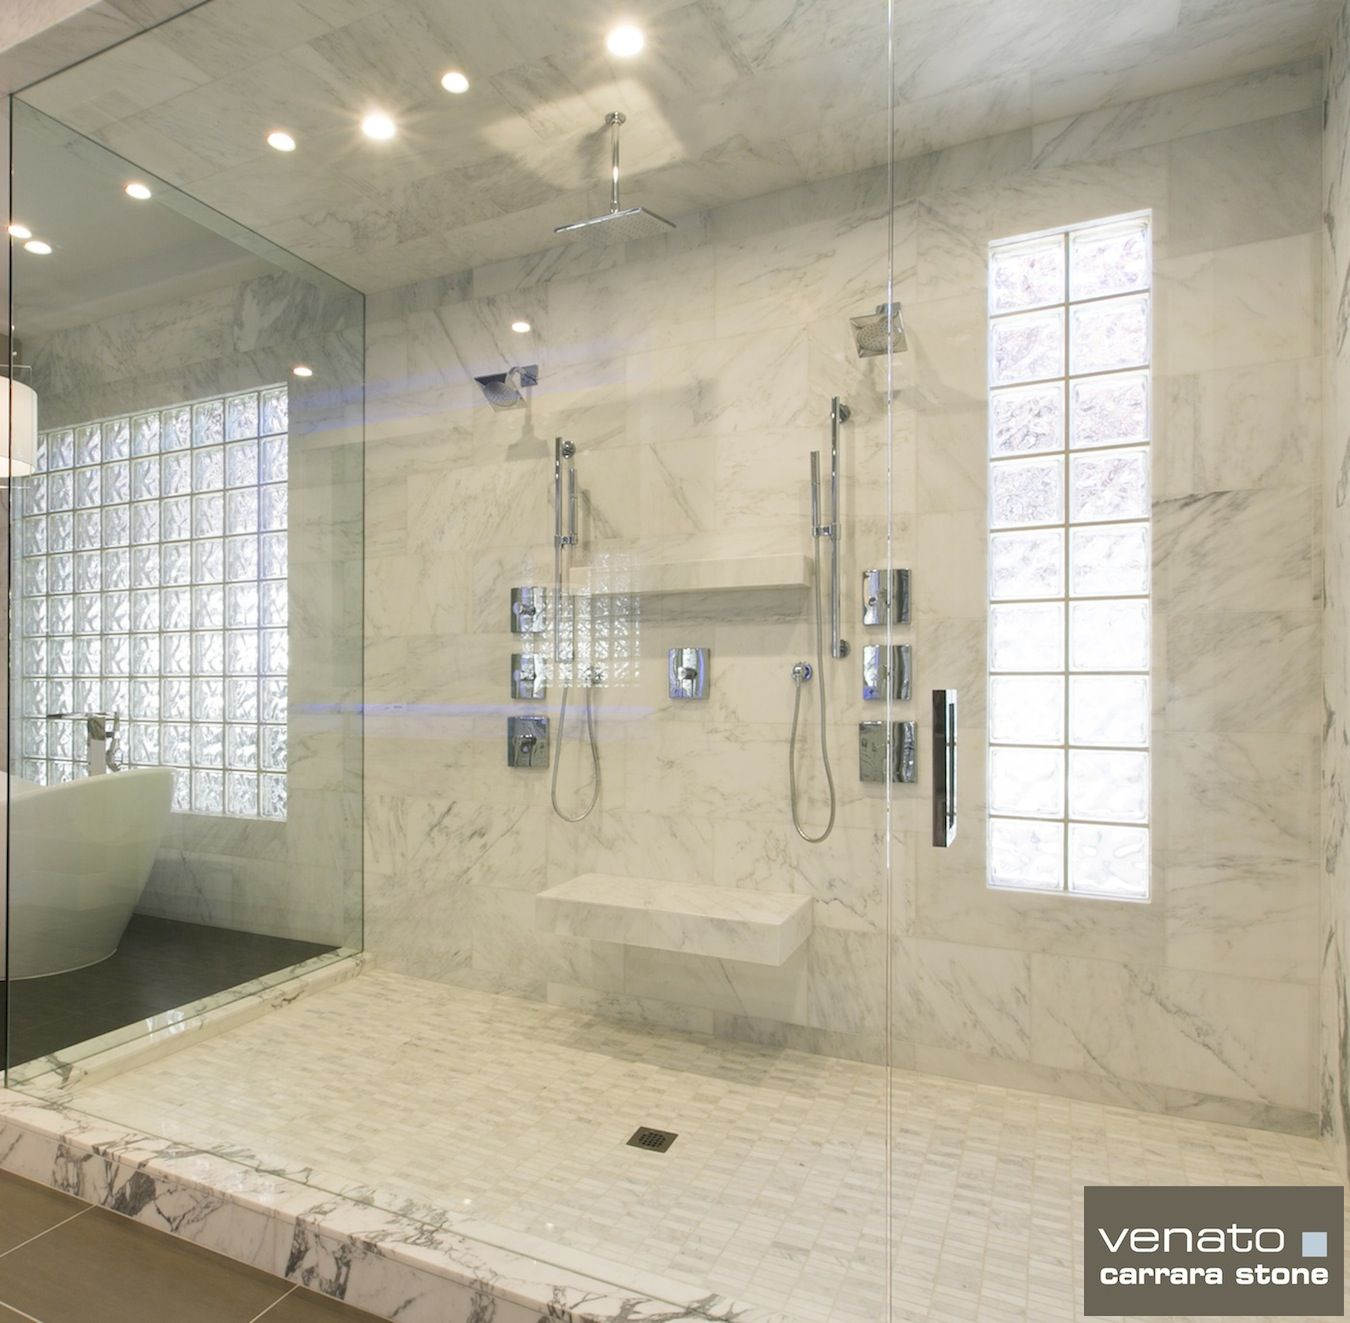 Carrara Carrera Venato Marble Polished 12x24 Subway Tile 22 Gif 1350 1323 Marble Tile Bathroom Carrara Marble Tile Tile Bathroom